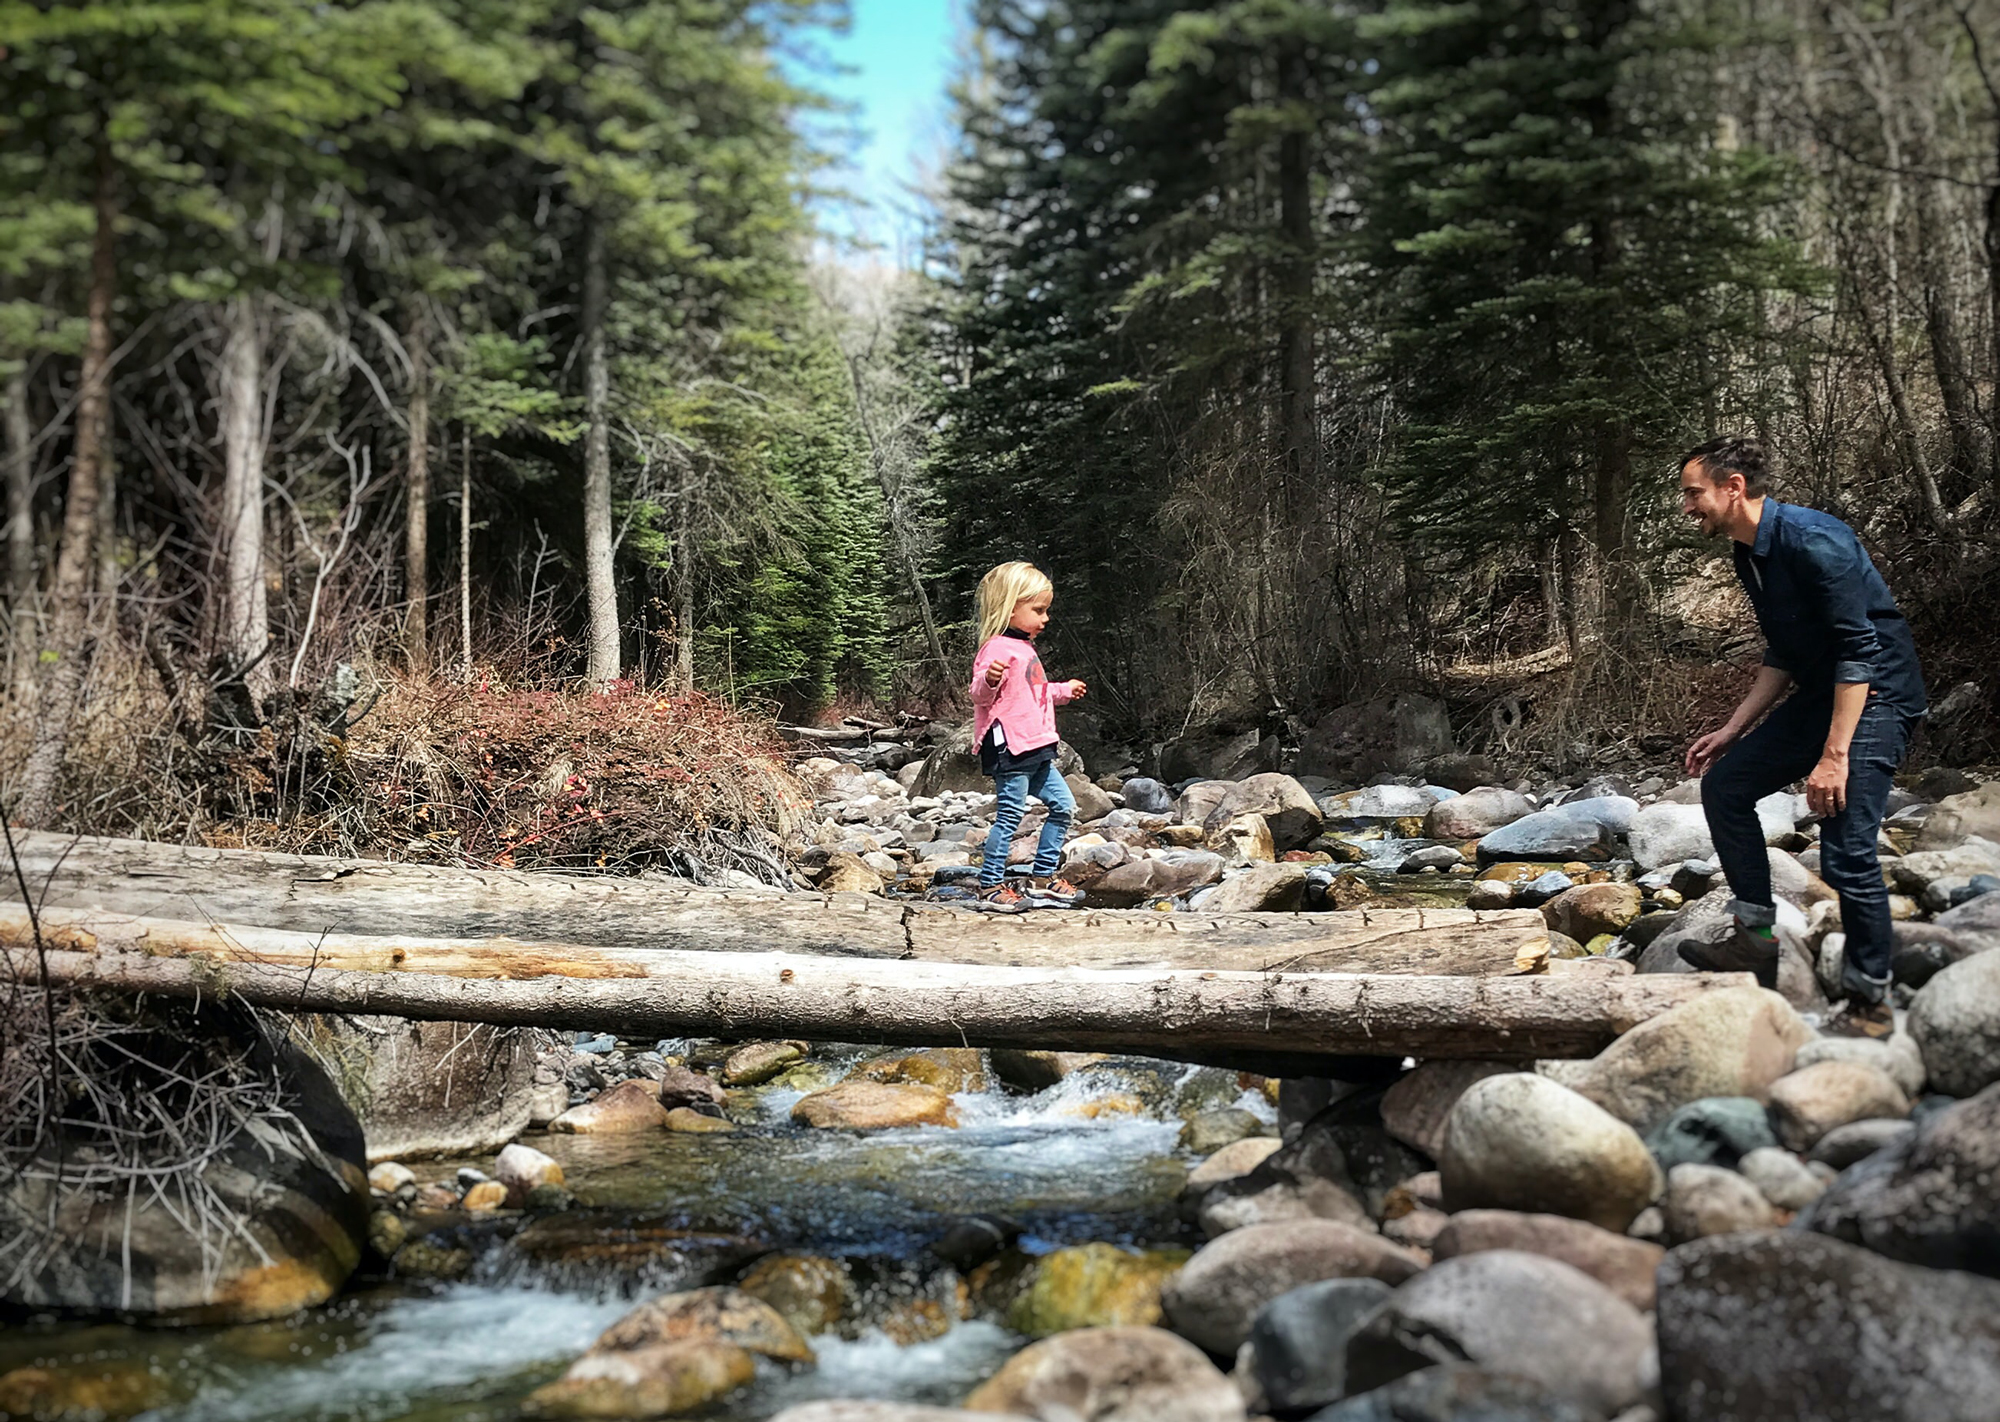 Man helping child over stream in the woods